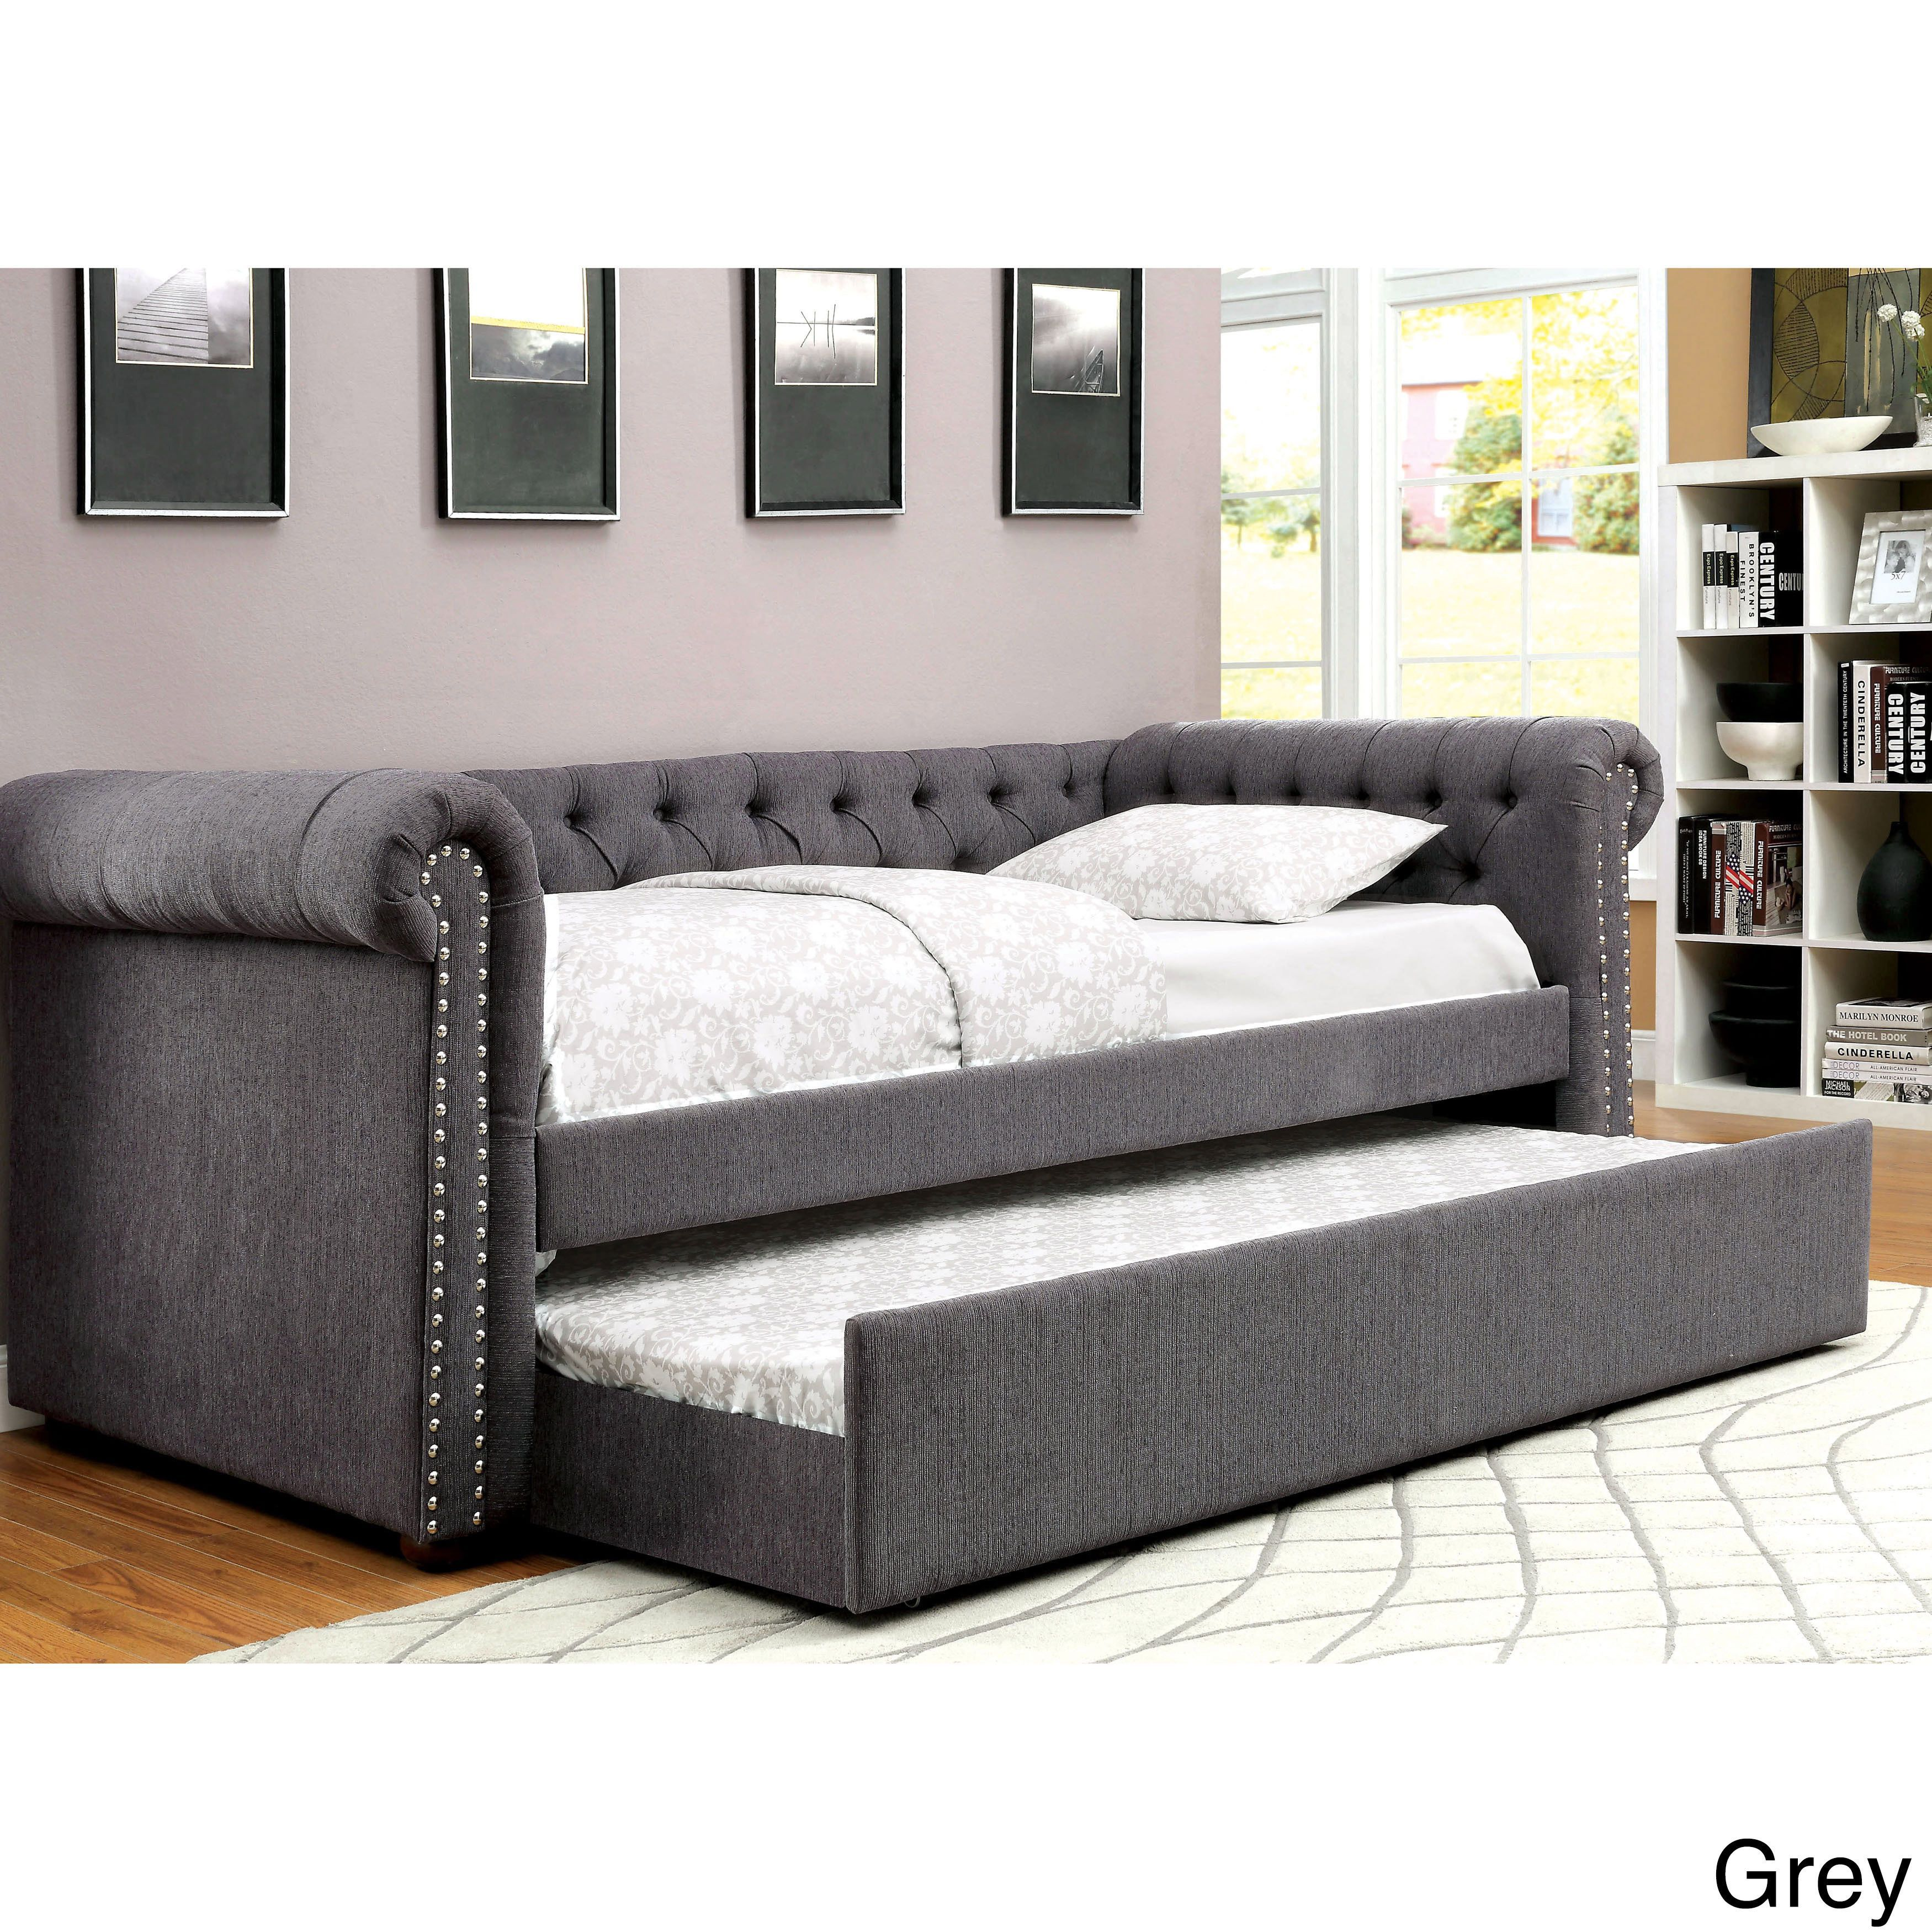 furniture of america nellie tuxedo style tufted flax daybed with